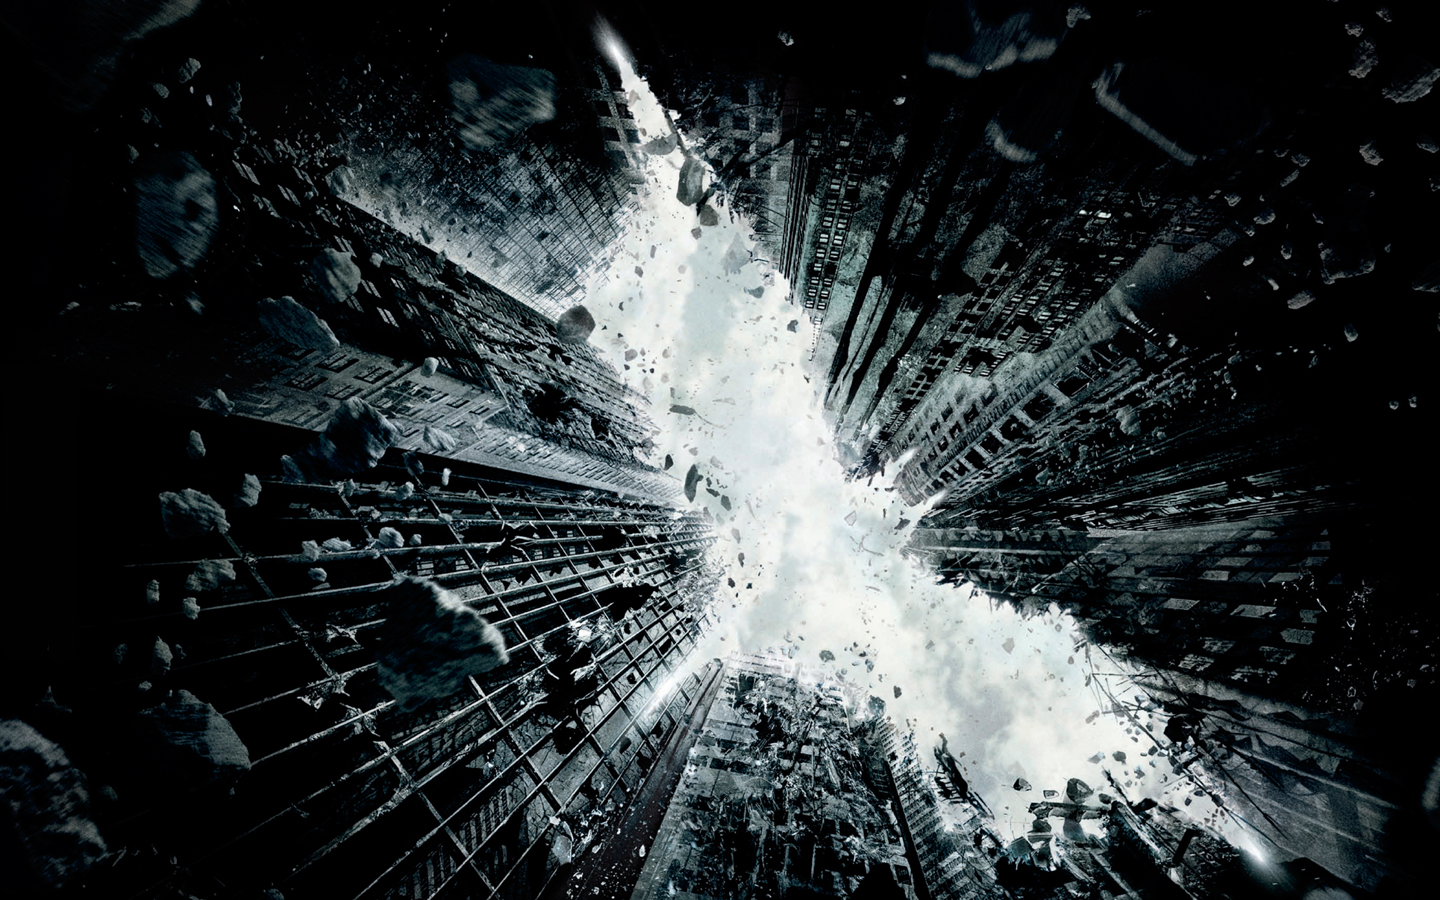 Batman rises wallpaper wallpapersafari for Dark knight rises wall mural